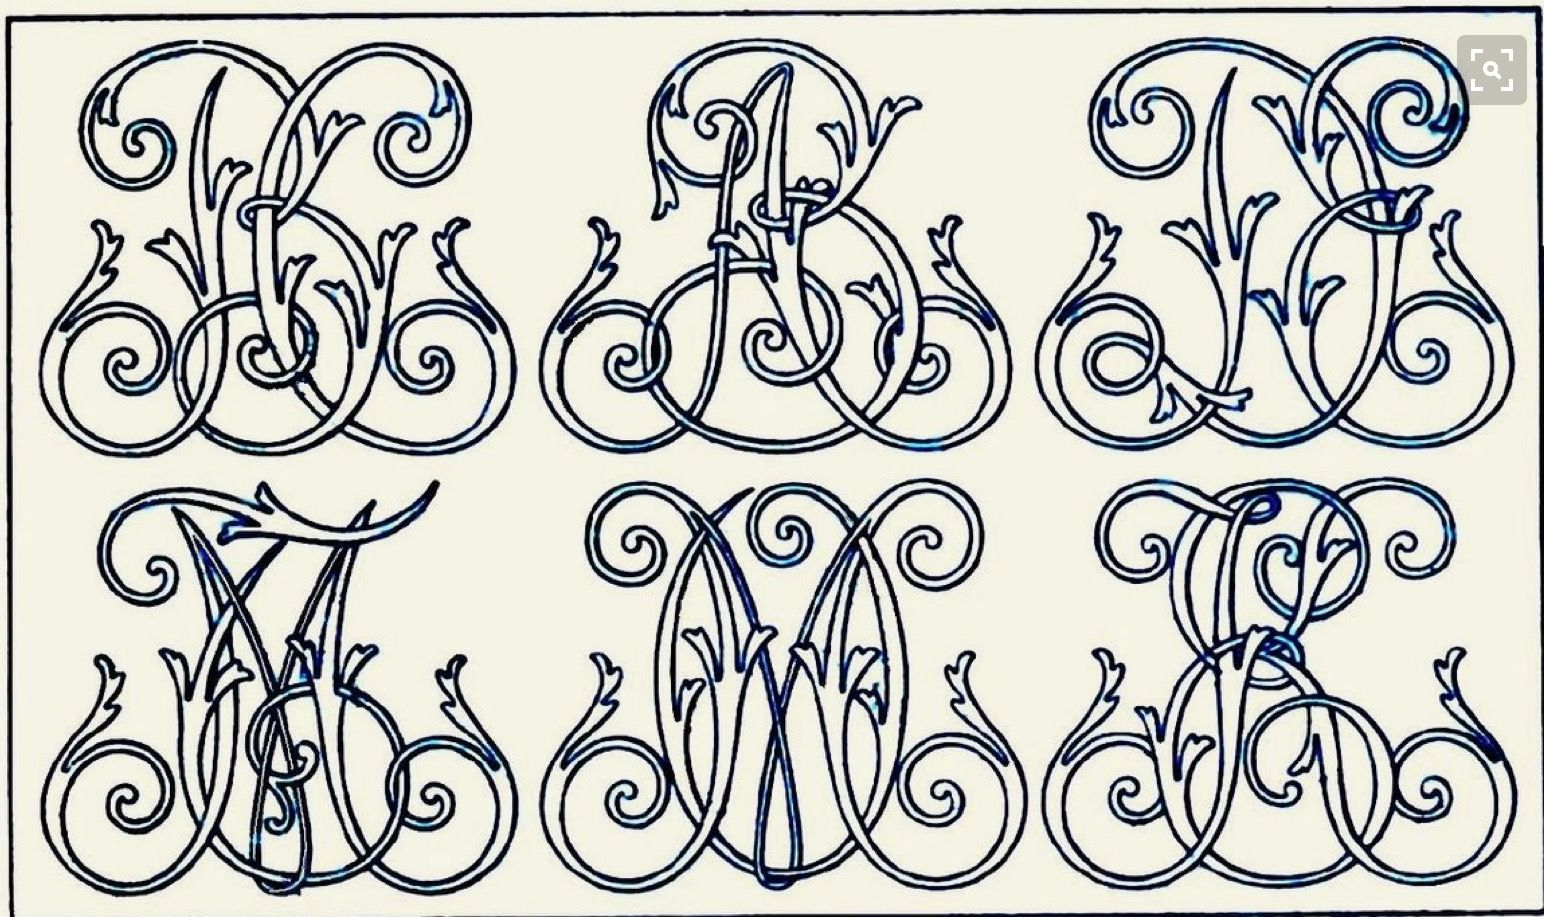 Pin by judy caldwell maness on monograms pinterest monograms